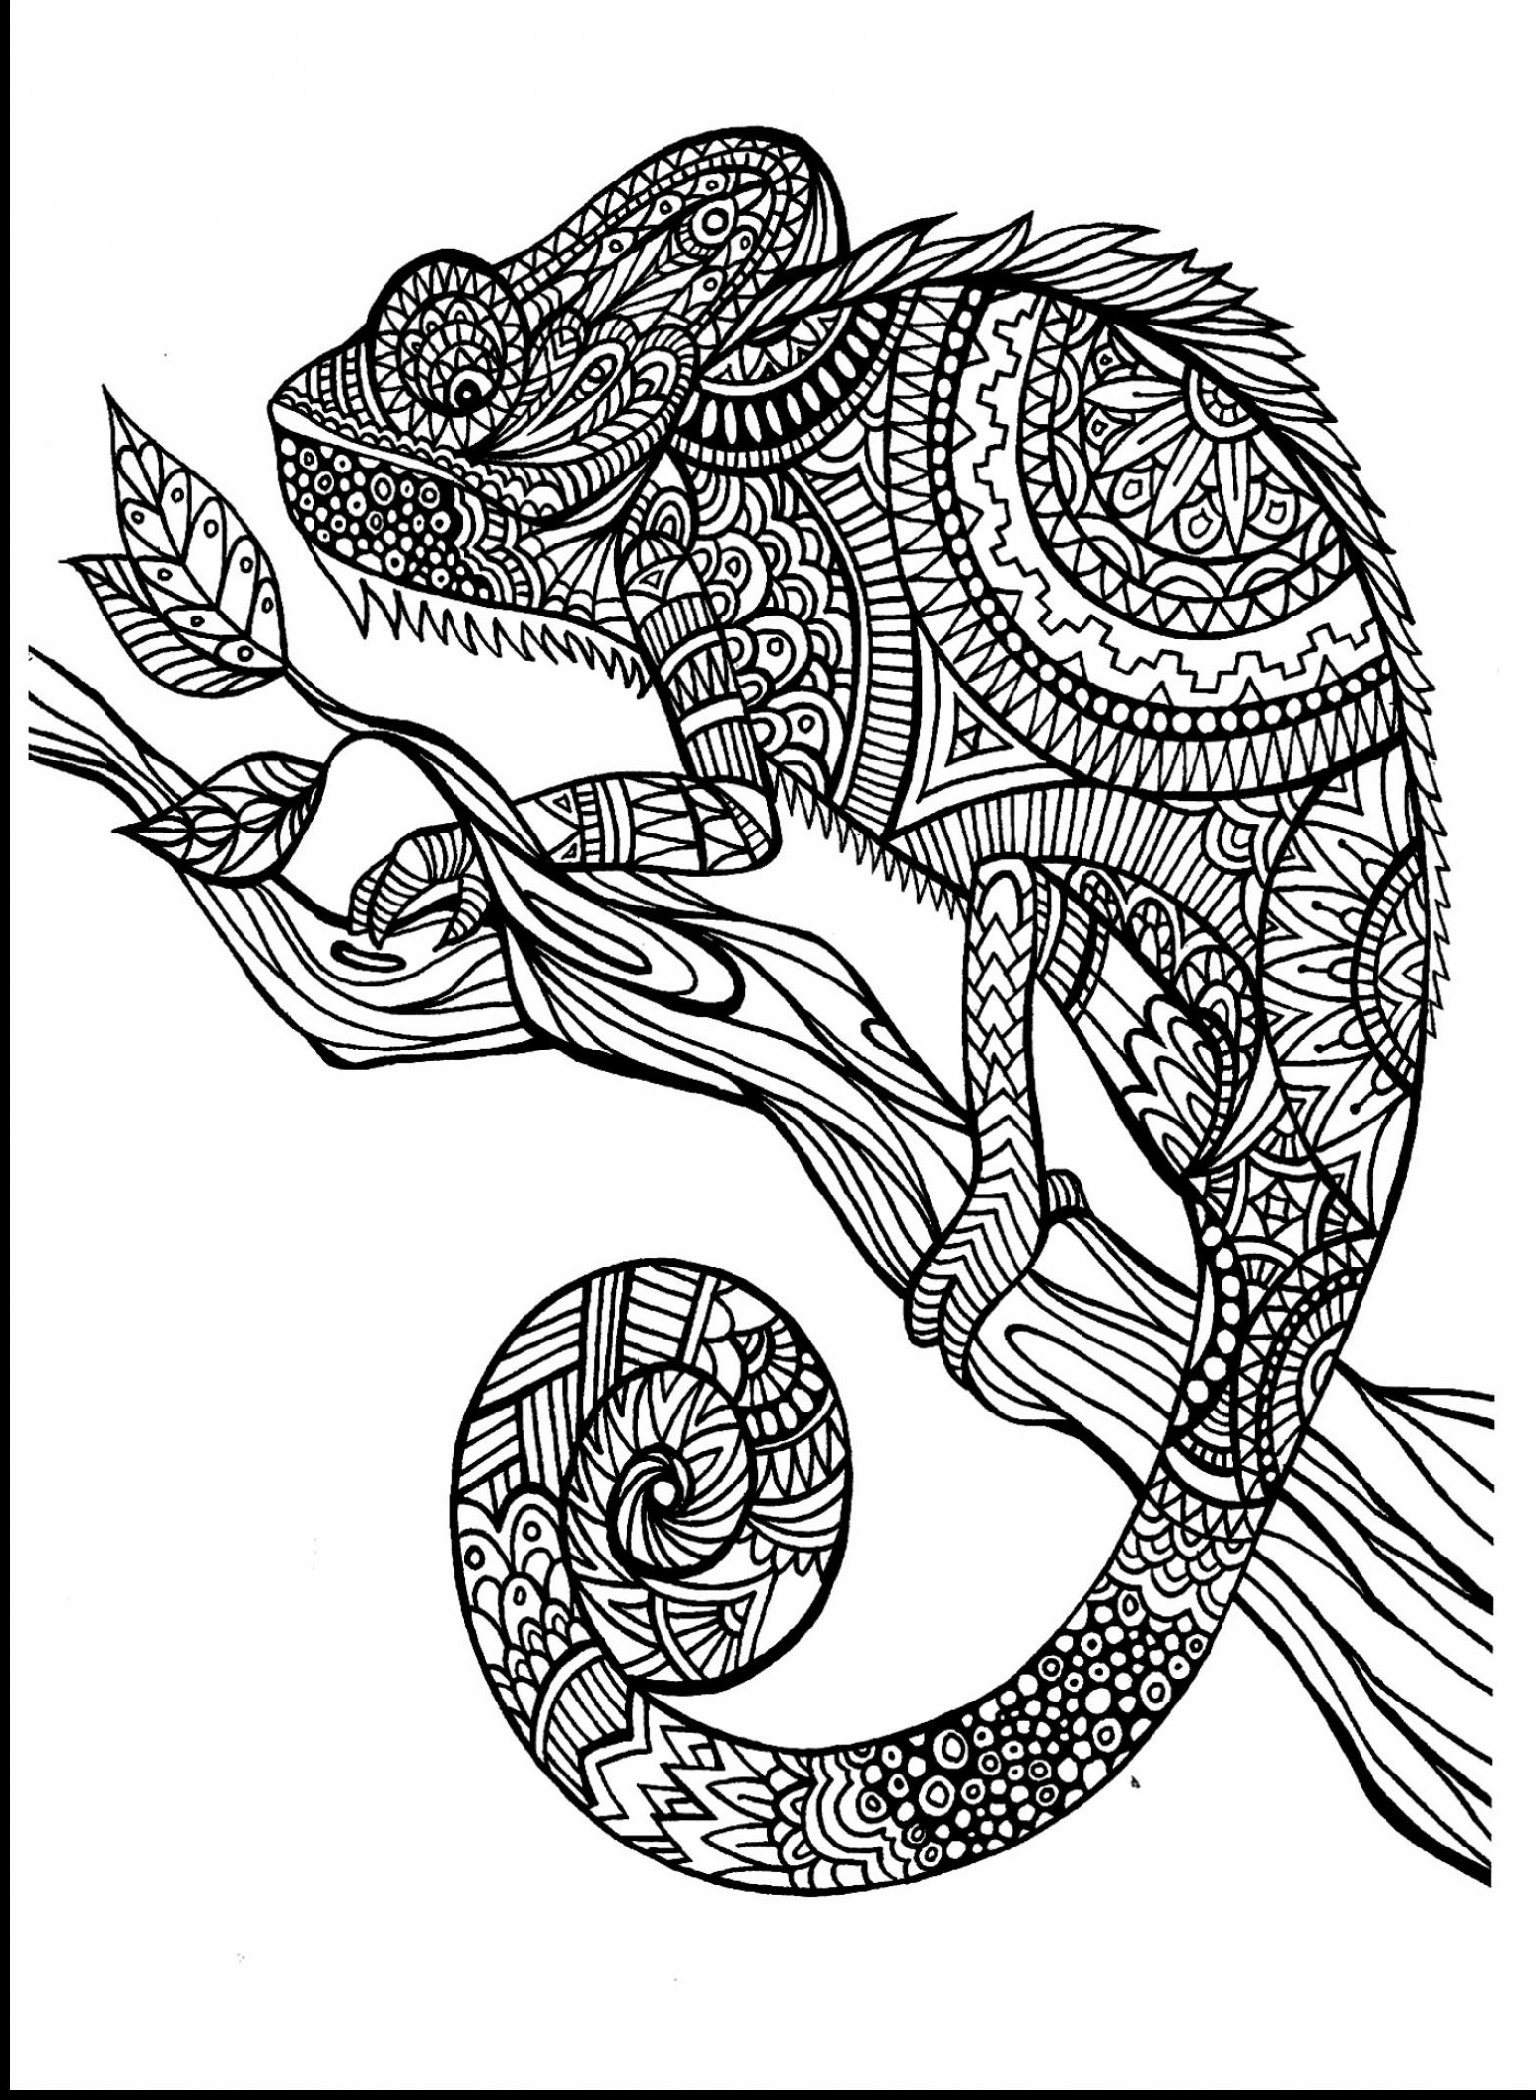 Animal-Coloring-Books-For-Adults-Free.